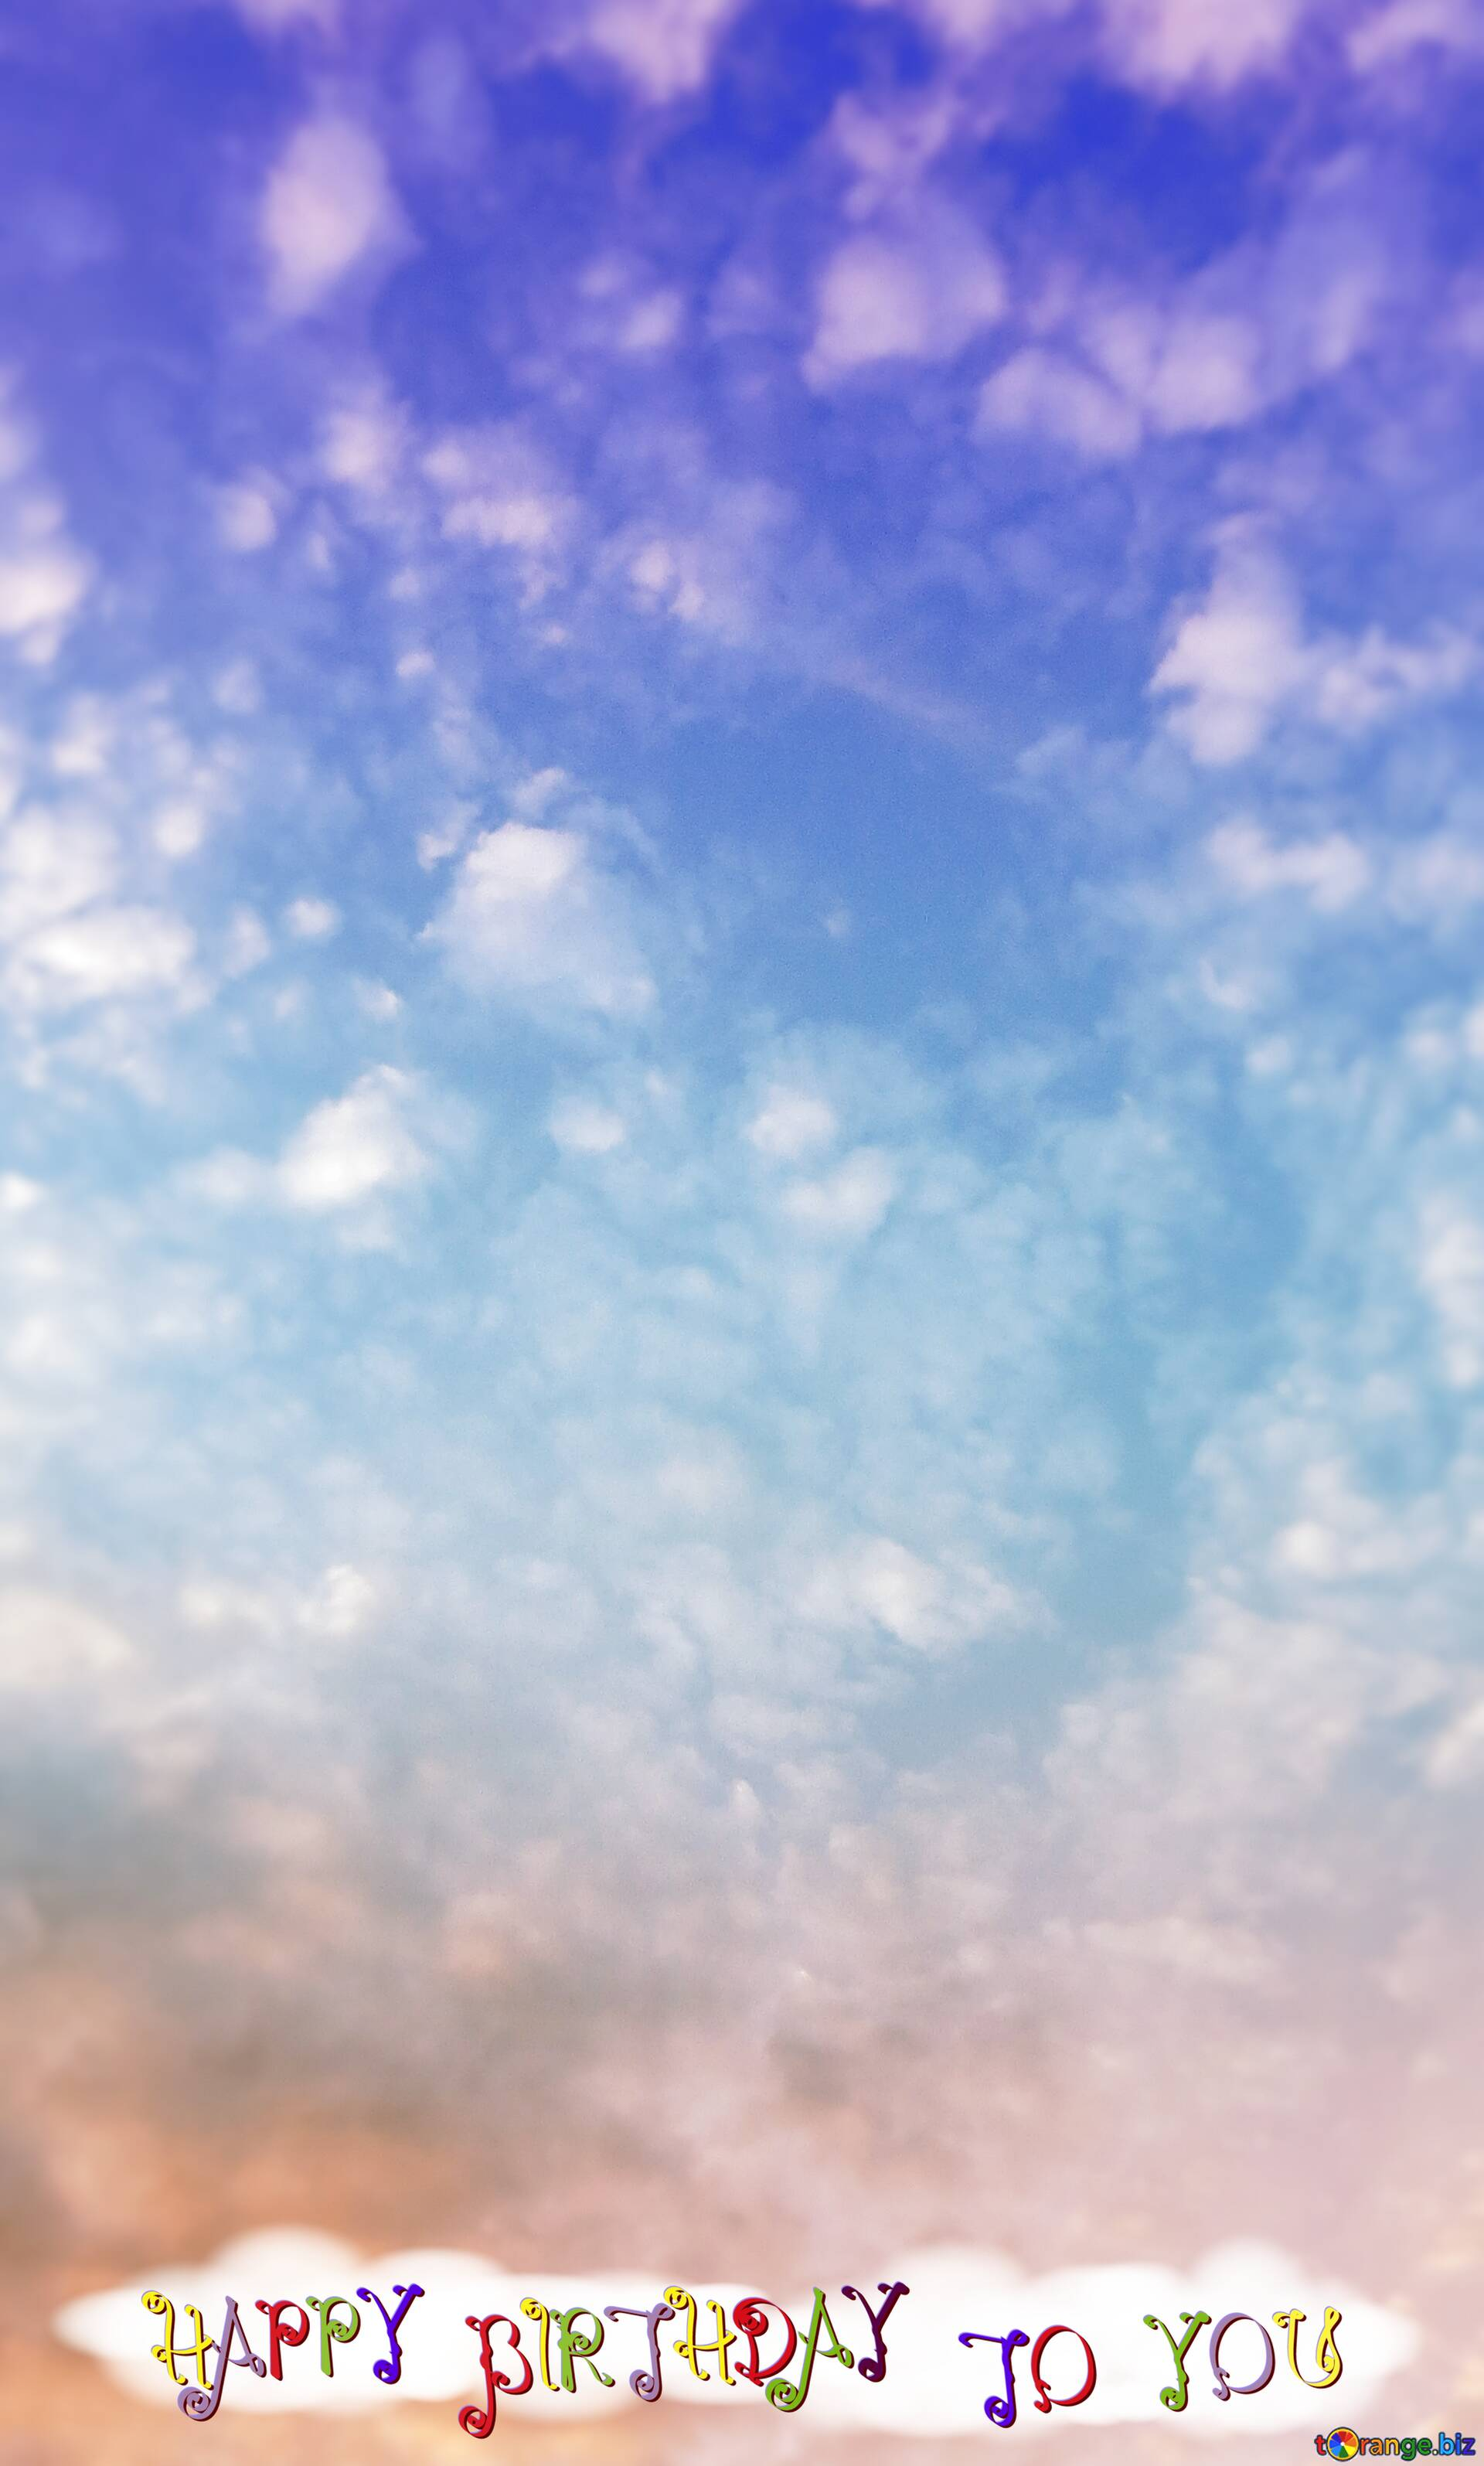 Download Free Picture Clouds Sky Happy Birthday Background On Cc By License Free Image Stock Torange Biz Fx 210487